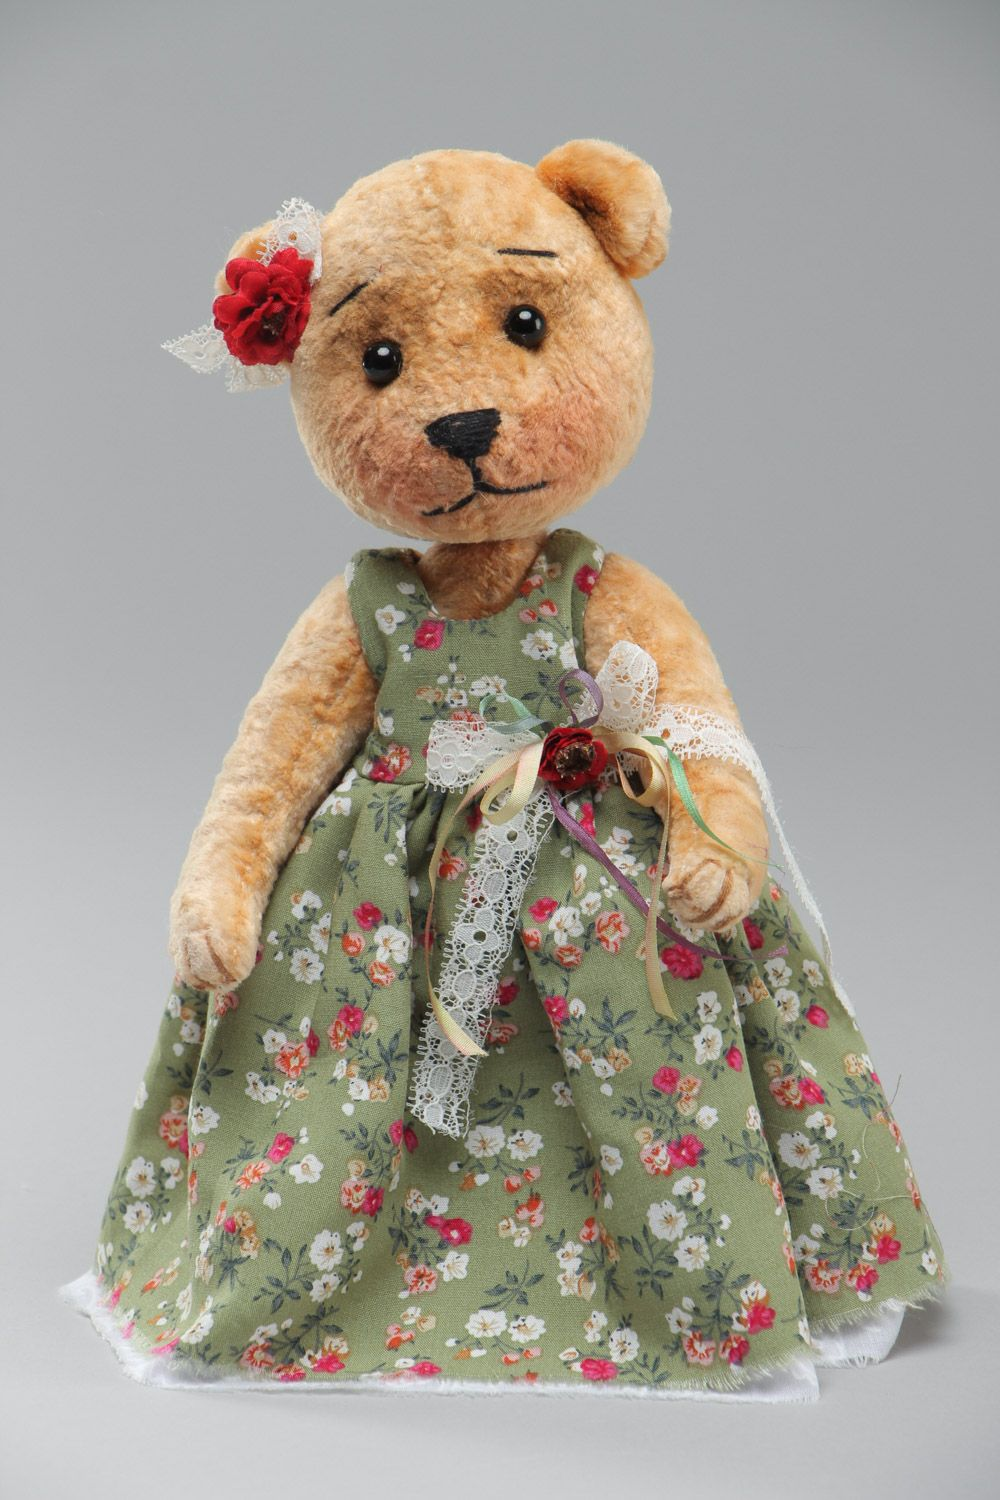 soft toys Handmade soft plush toy bear girl in long dress with floral pattern for children - MADEheart.com